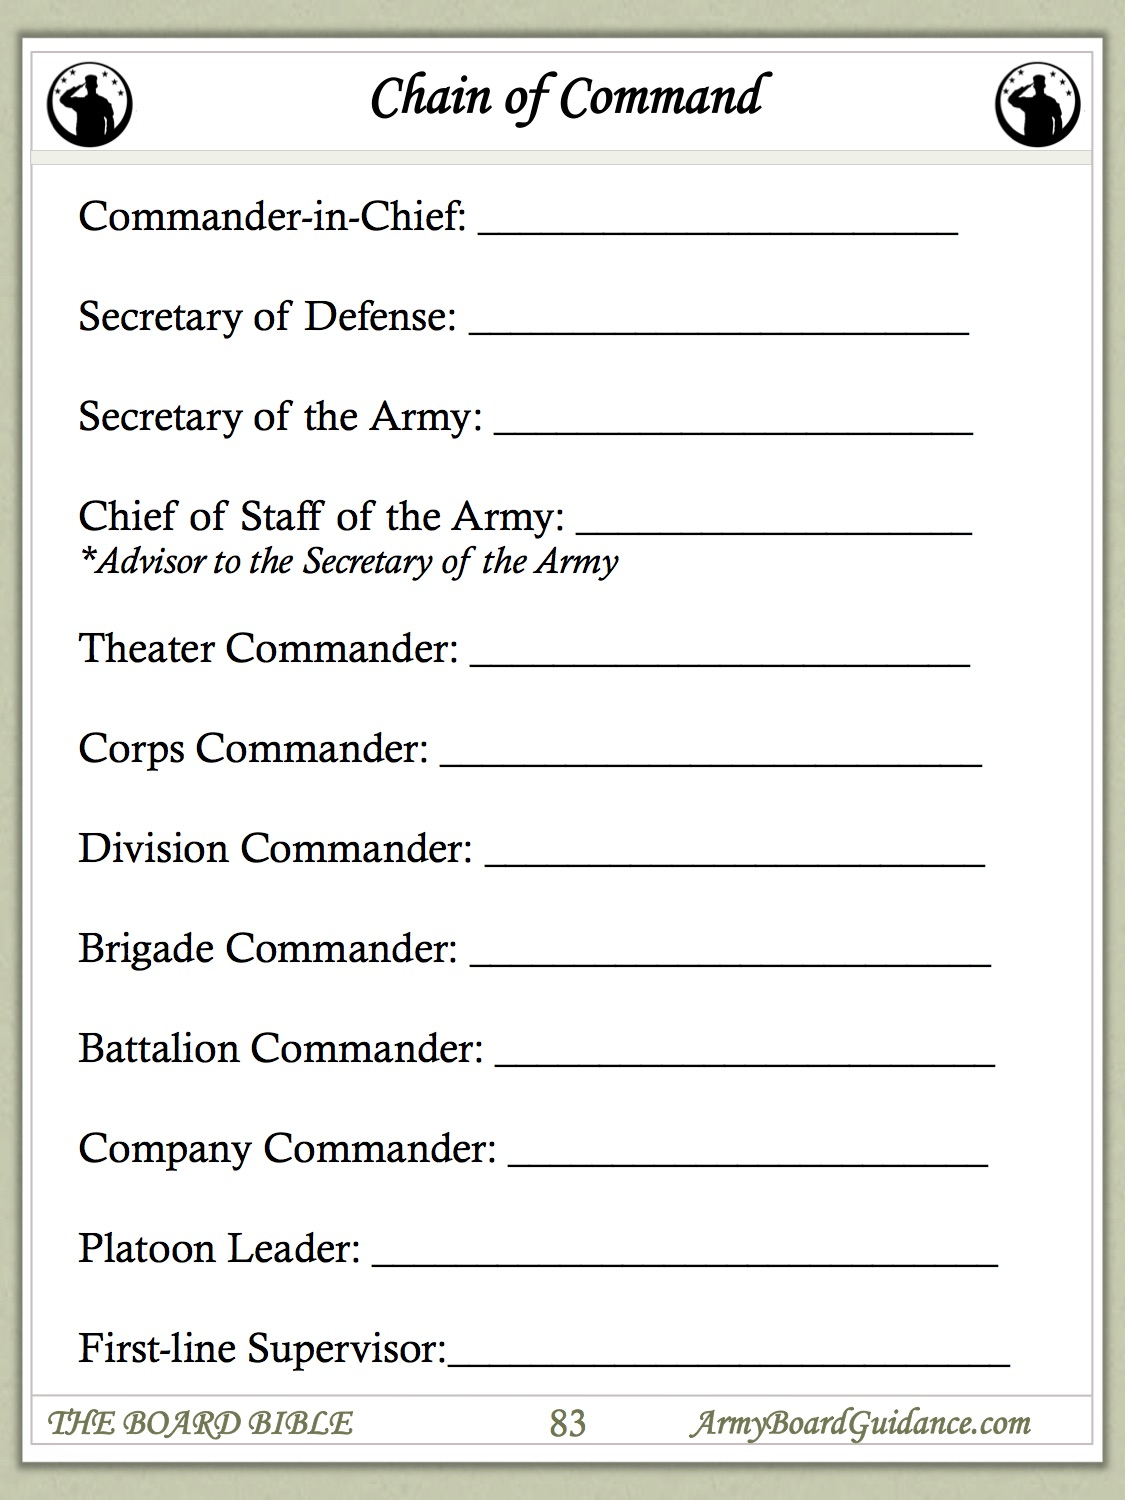 Chain Of Command Worksheet